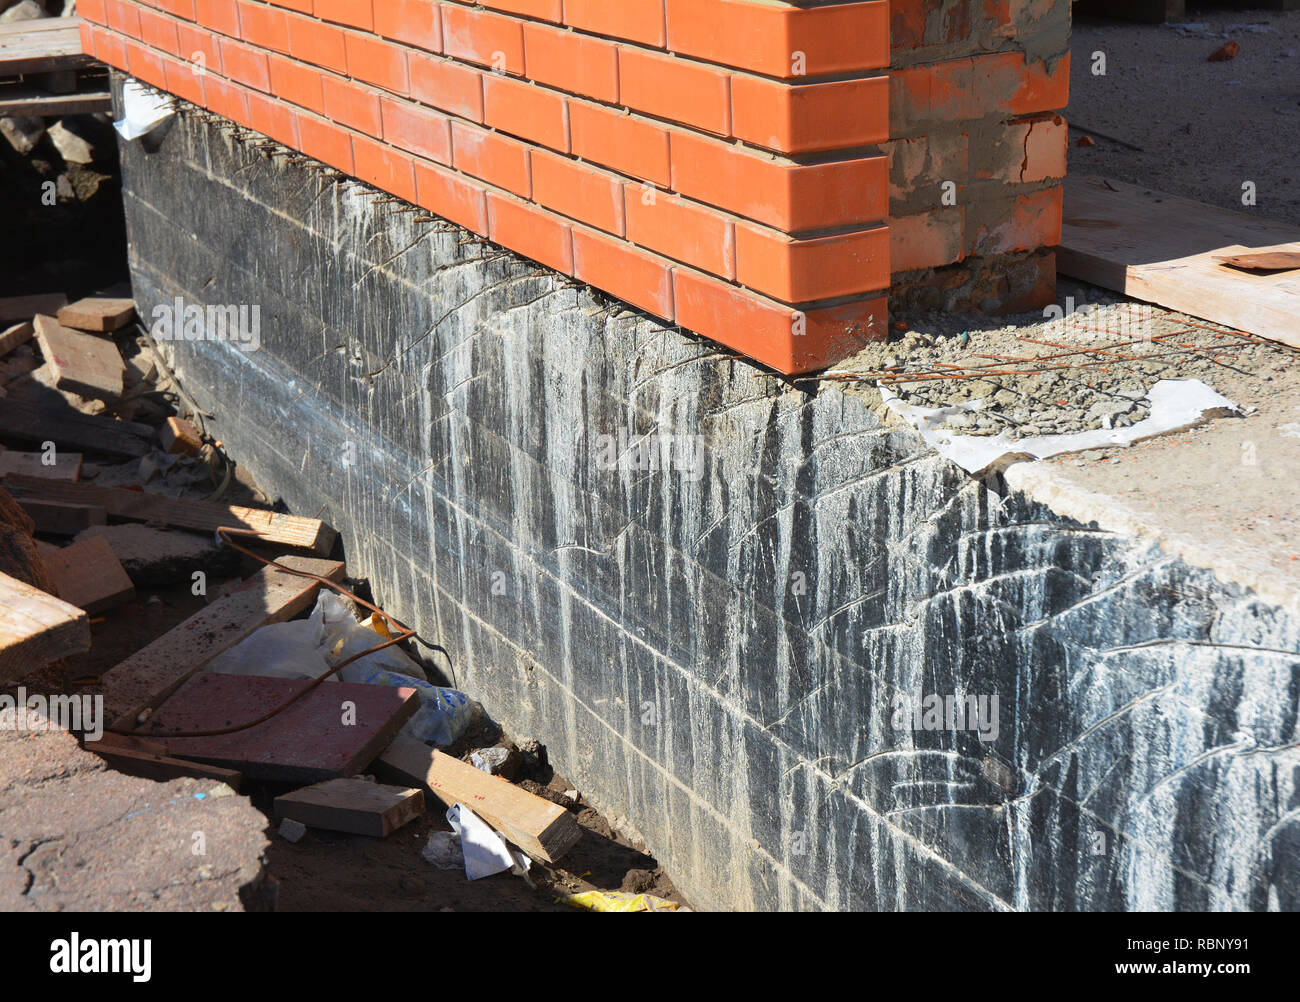 Waterproofing foundation walls. Foundation Waterproofing and Damp proofing Coatings.Waterproofing house foundation with spray on tar. House insulation - Stock Image